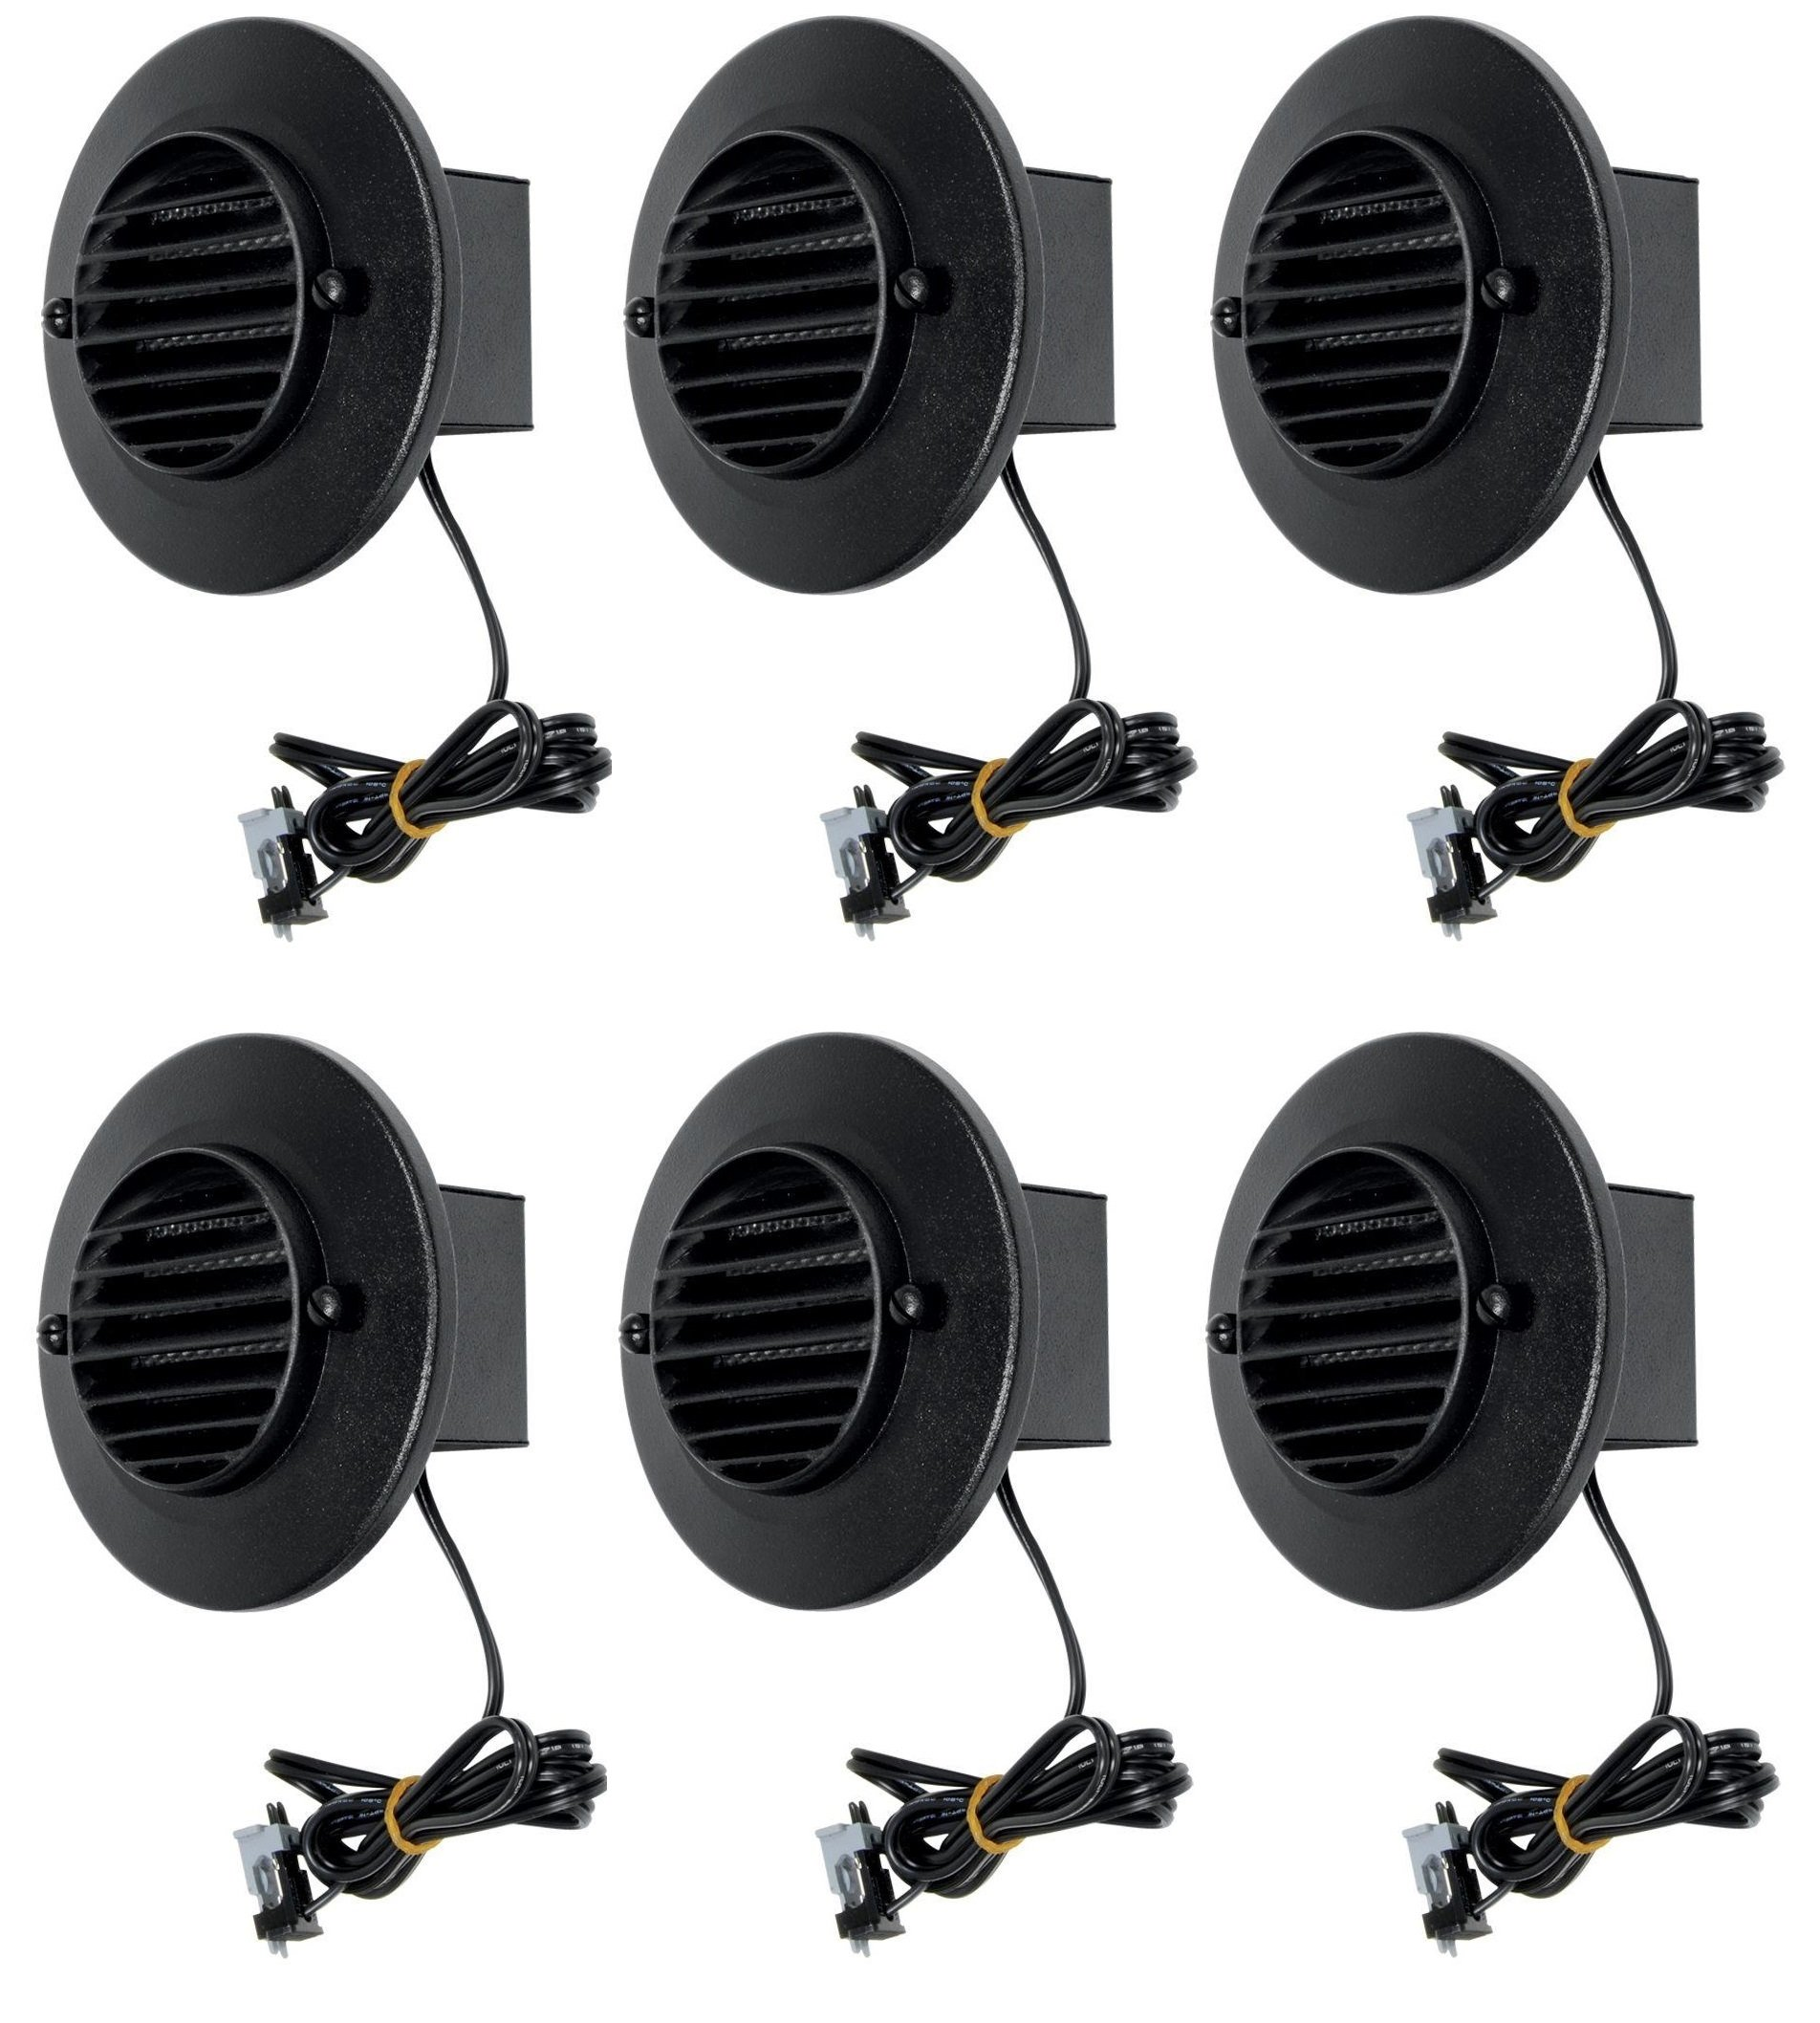 6 Pack Malibu 8401-9403-06 LED Deck Step Round Recessed Lights Low Voltage with Black Finish BY MALIBU DISTRIBUTION